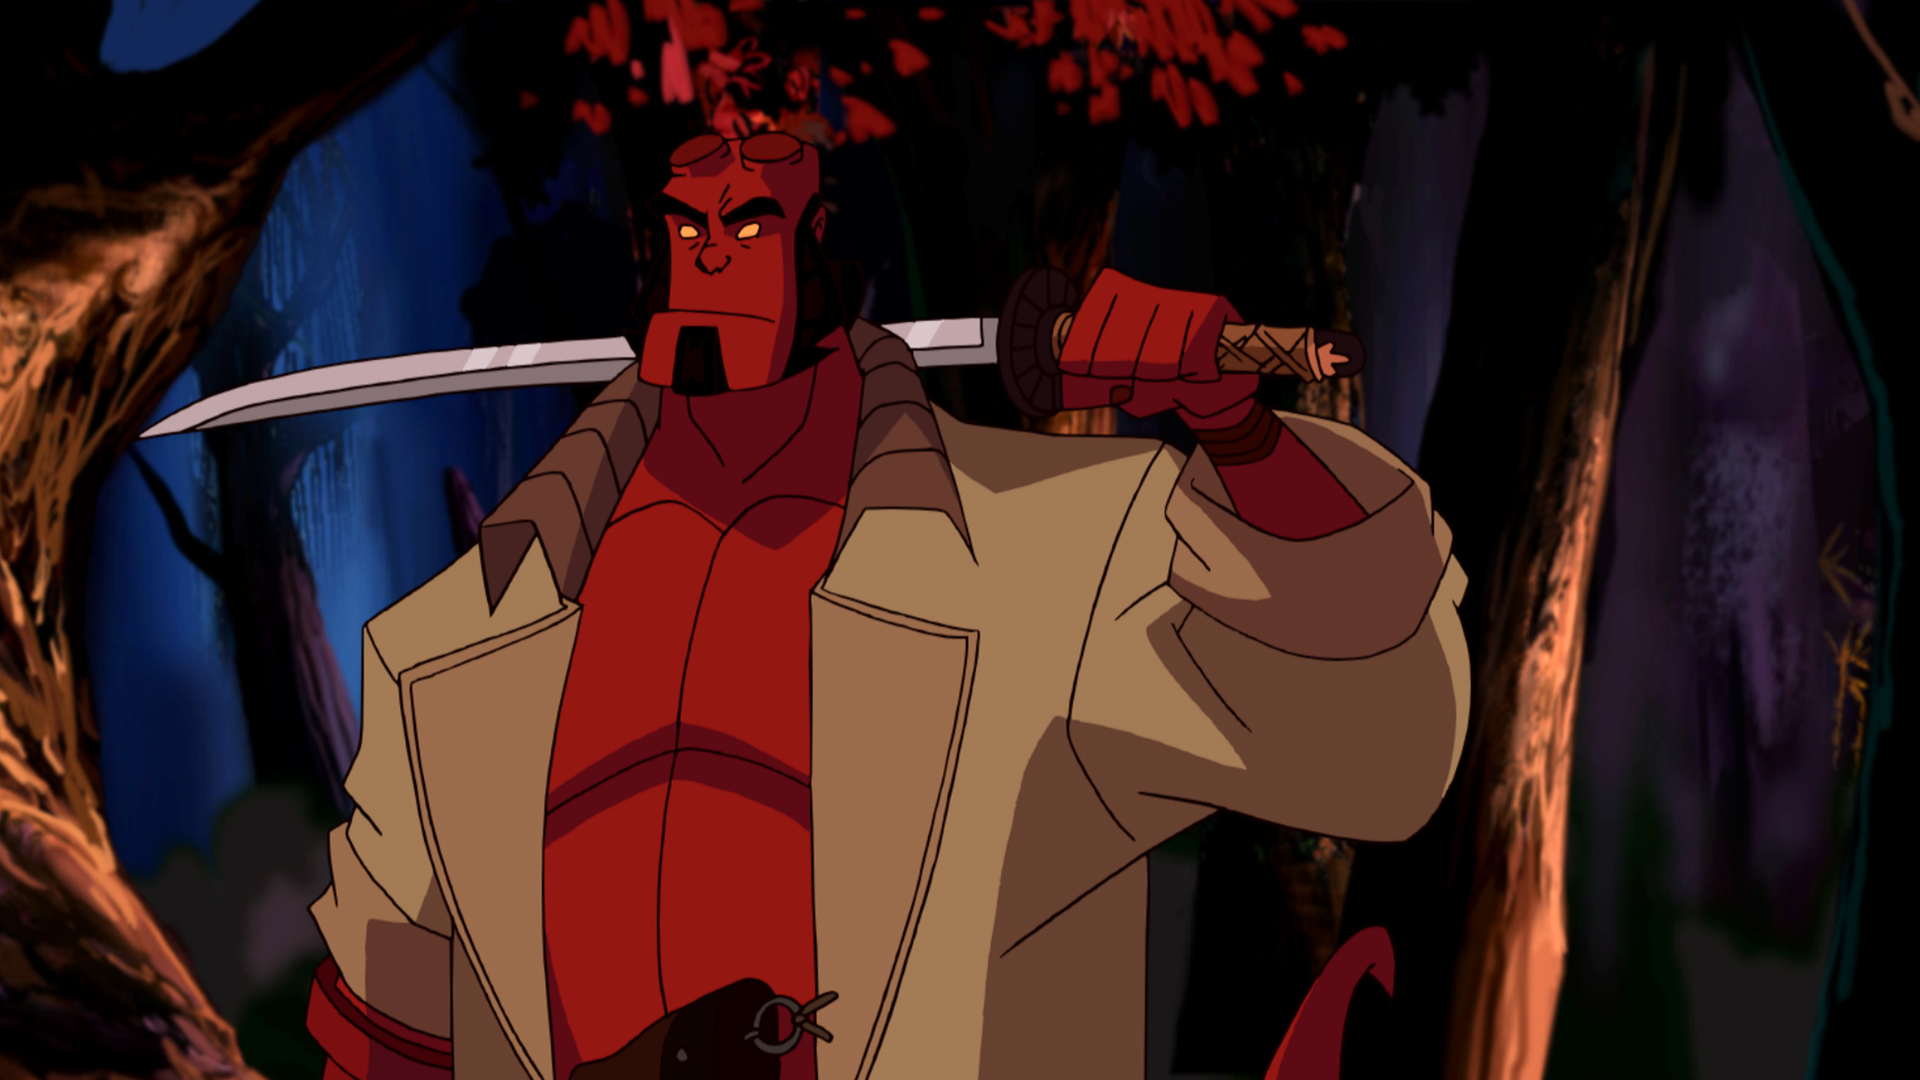 Hellboy in a Japanese spirit realm in Hellboy Animated Sword of Storms (2006)